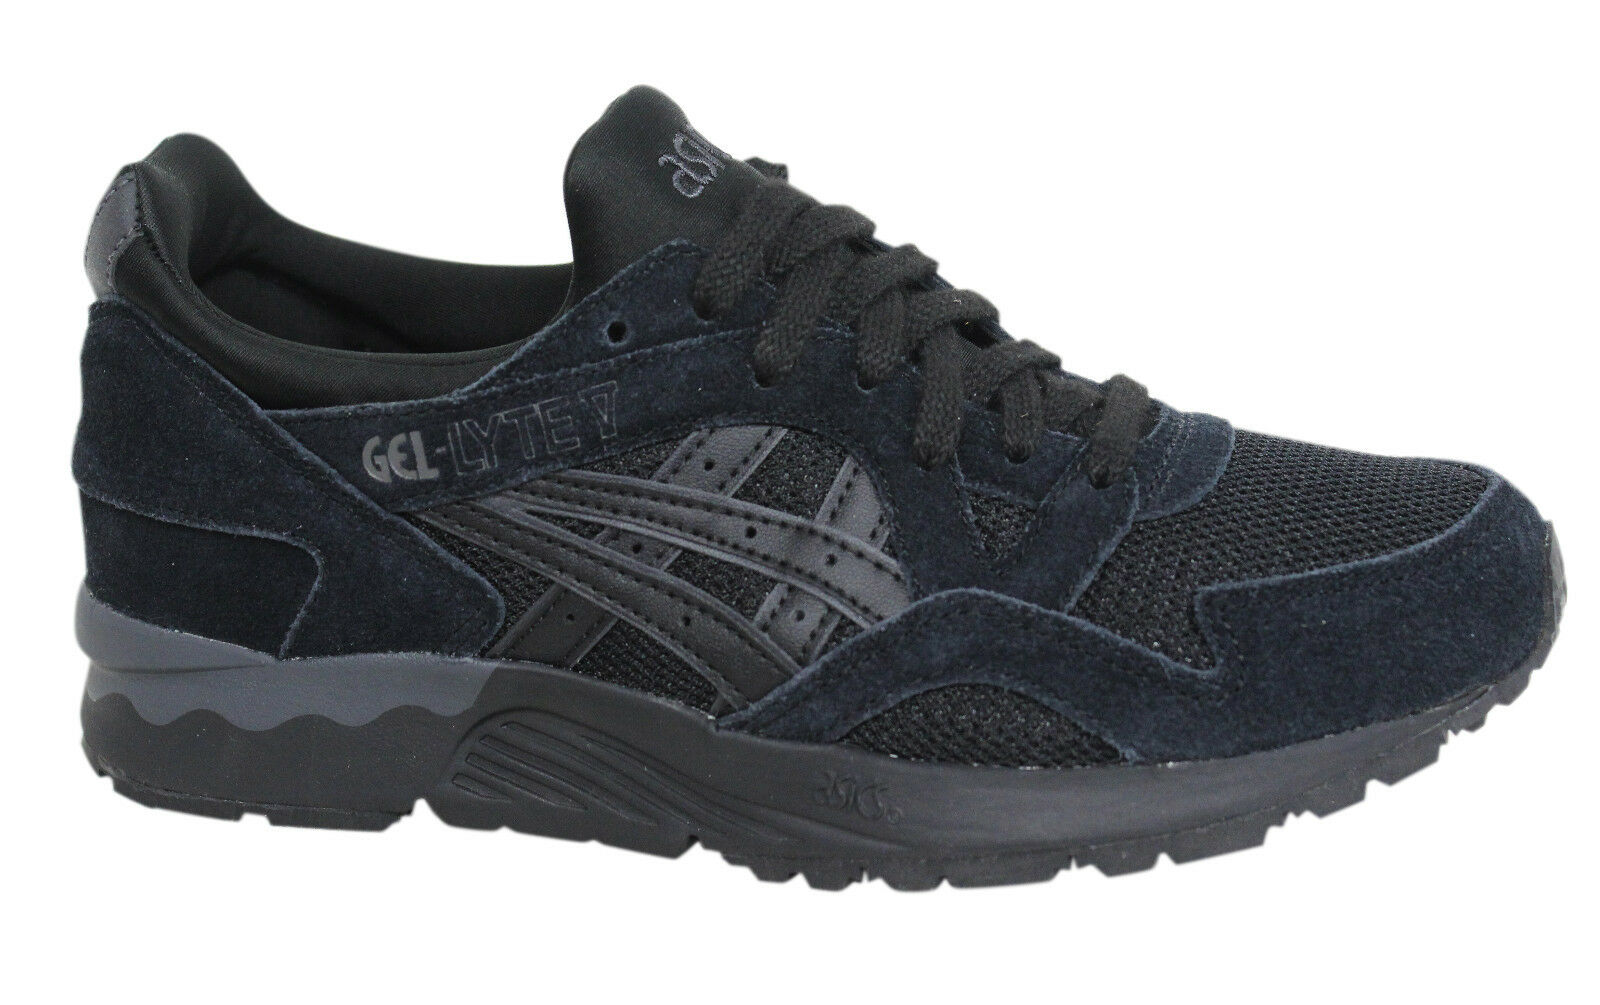 Asics Gel-Lyte V Lace Up Black Leather Mens Trainers H603L 9090 M9